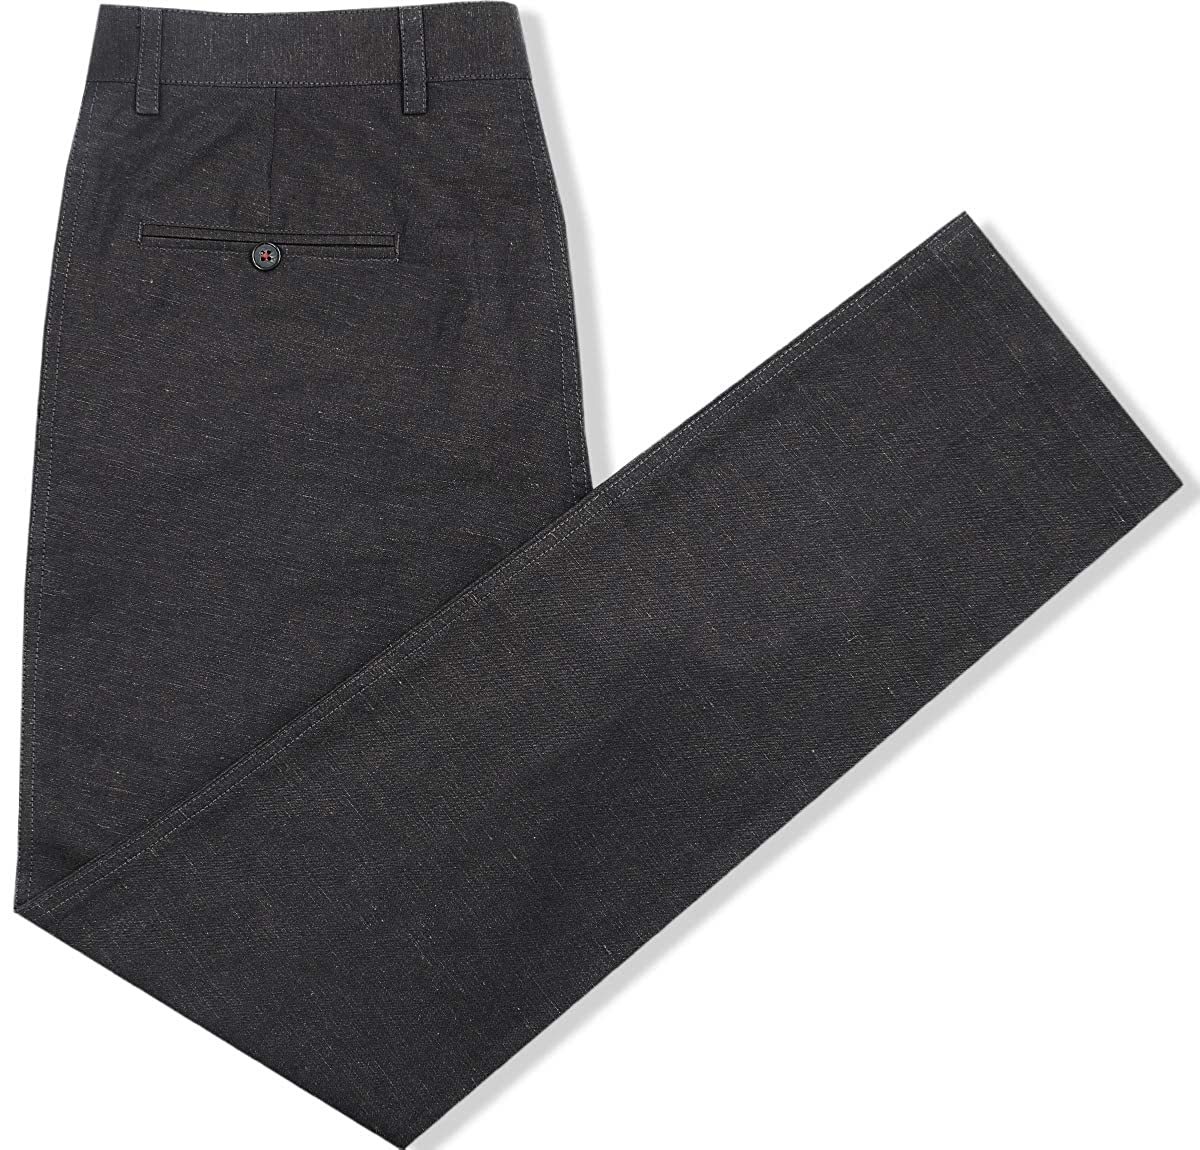 French crown Chocolate Brown Regular fit Linen Trouser 32